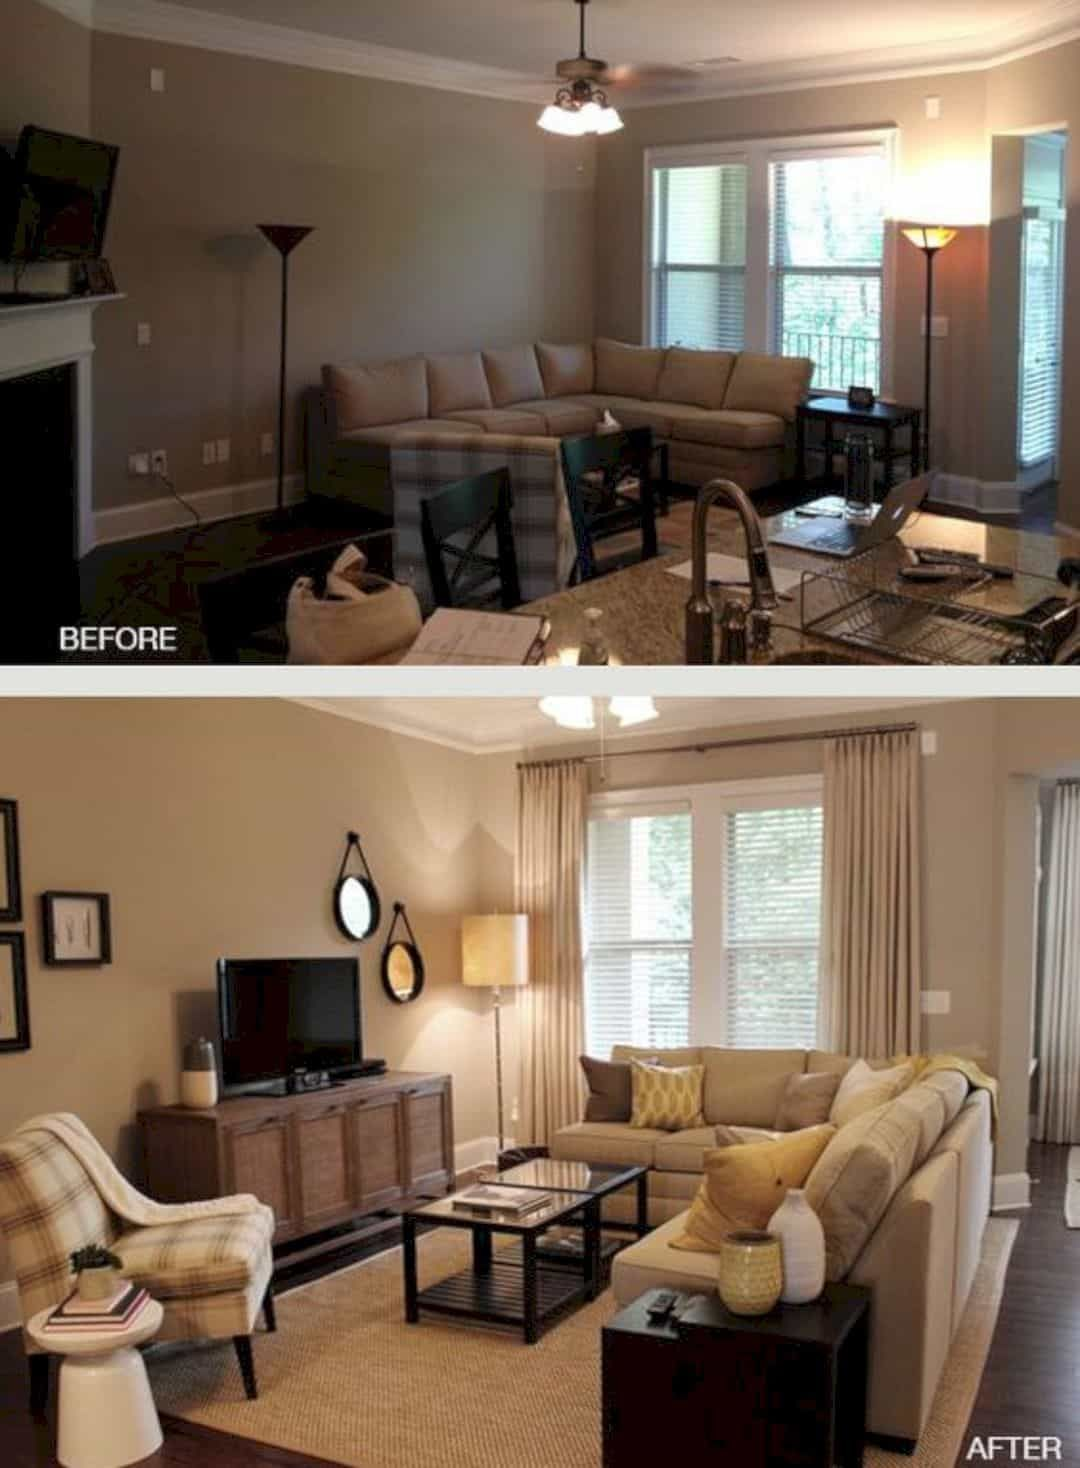 12 Living Room Ideas For A Grey Sectional 15 Clever Ideas To Decora Small Living Room Layout Furniture Placement Living Room Living Room Furniture Arrangement Small living room furniture